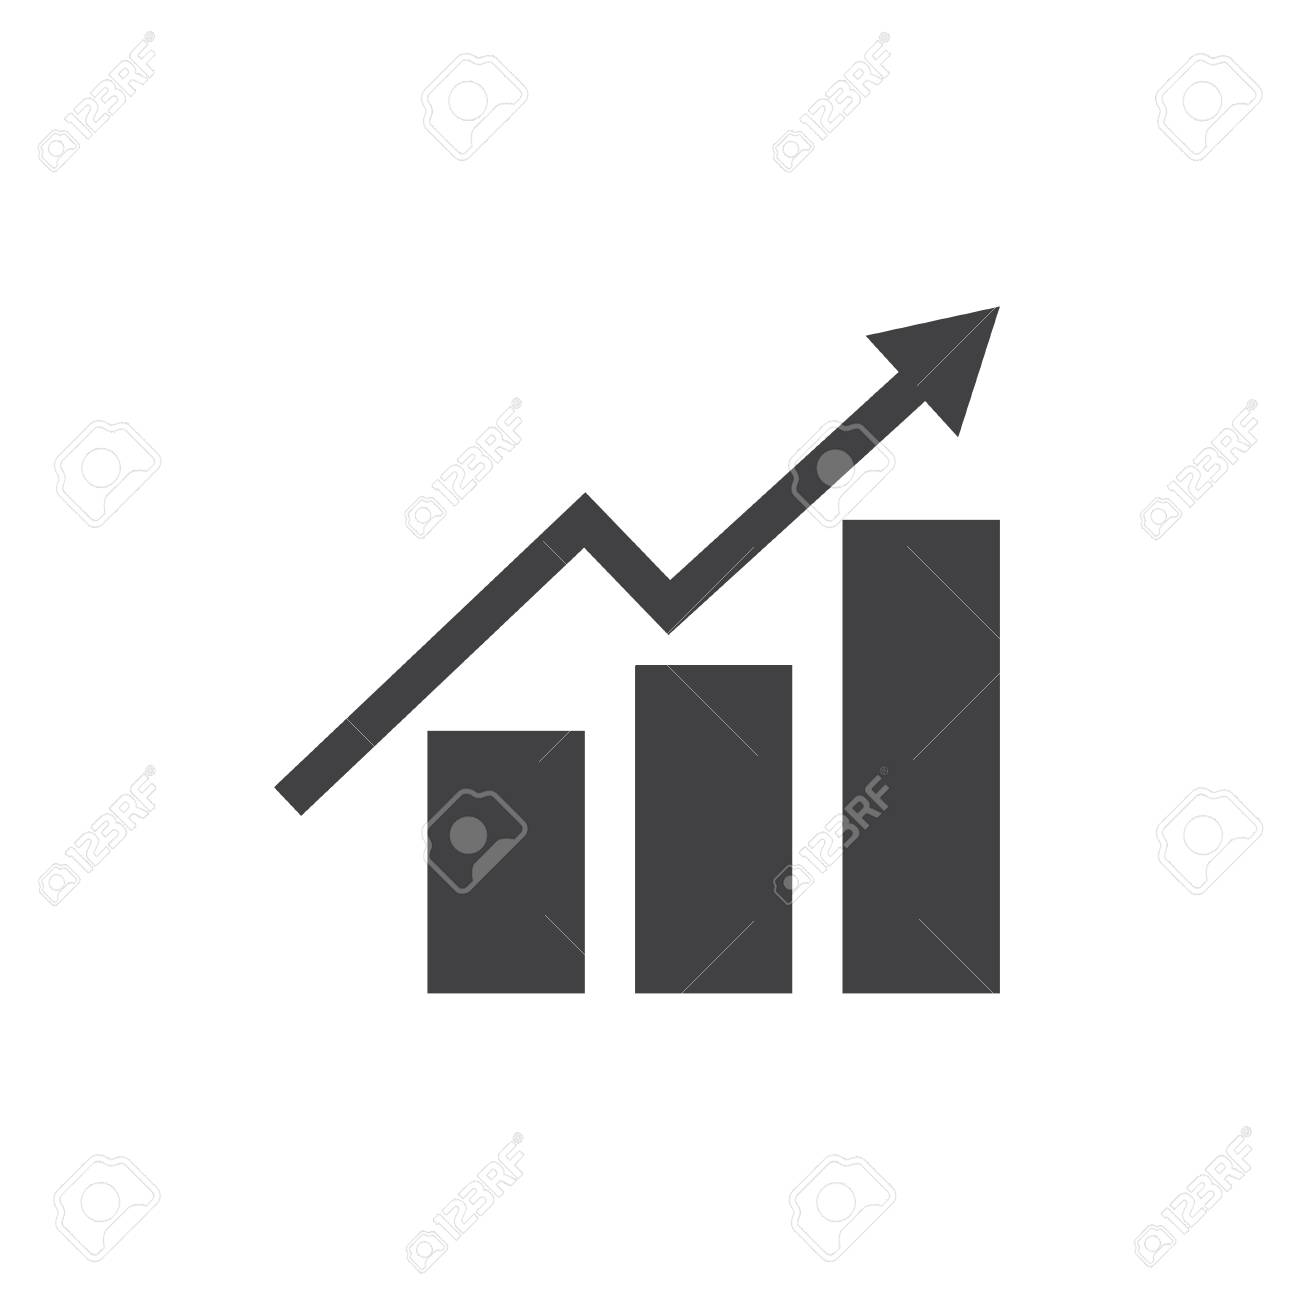 growing bar graph icon in black on a white background. vector